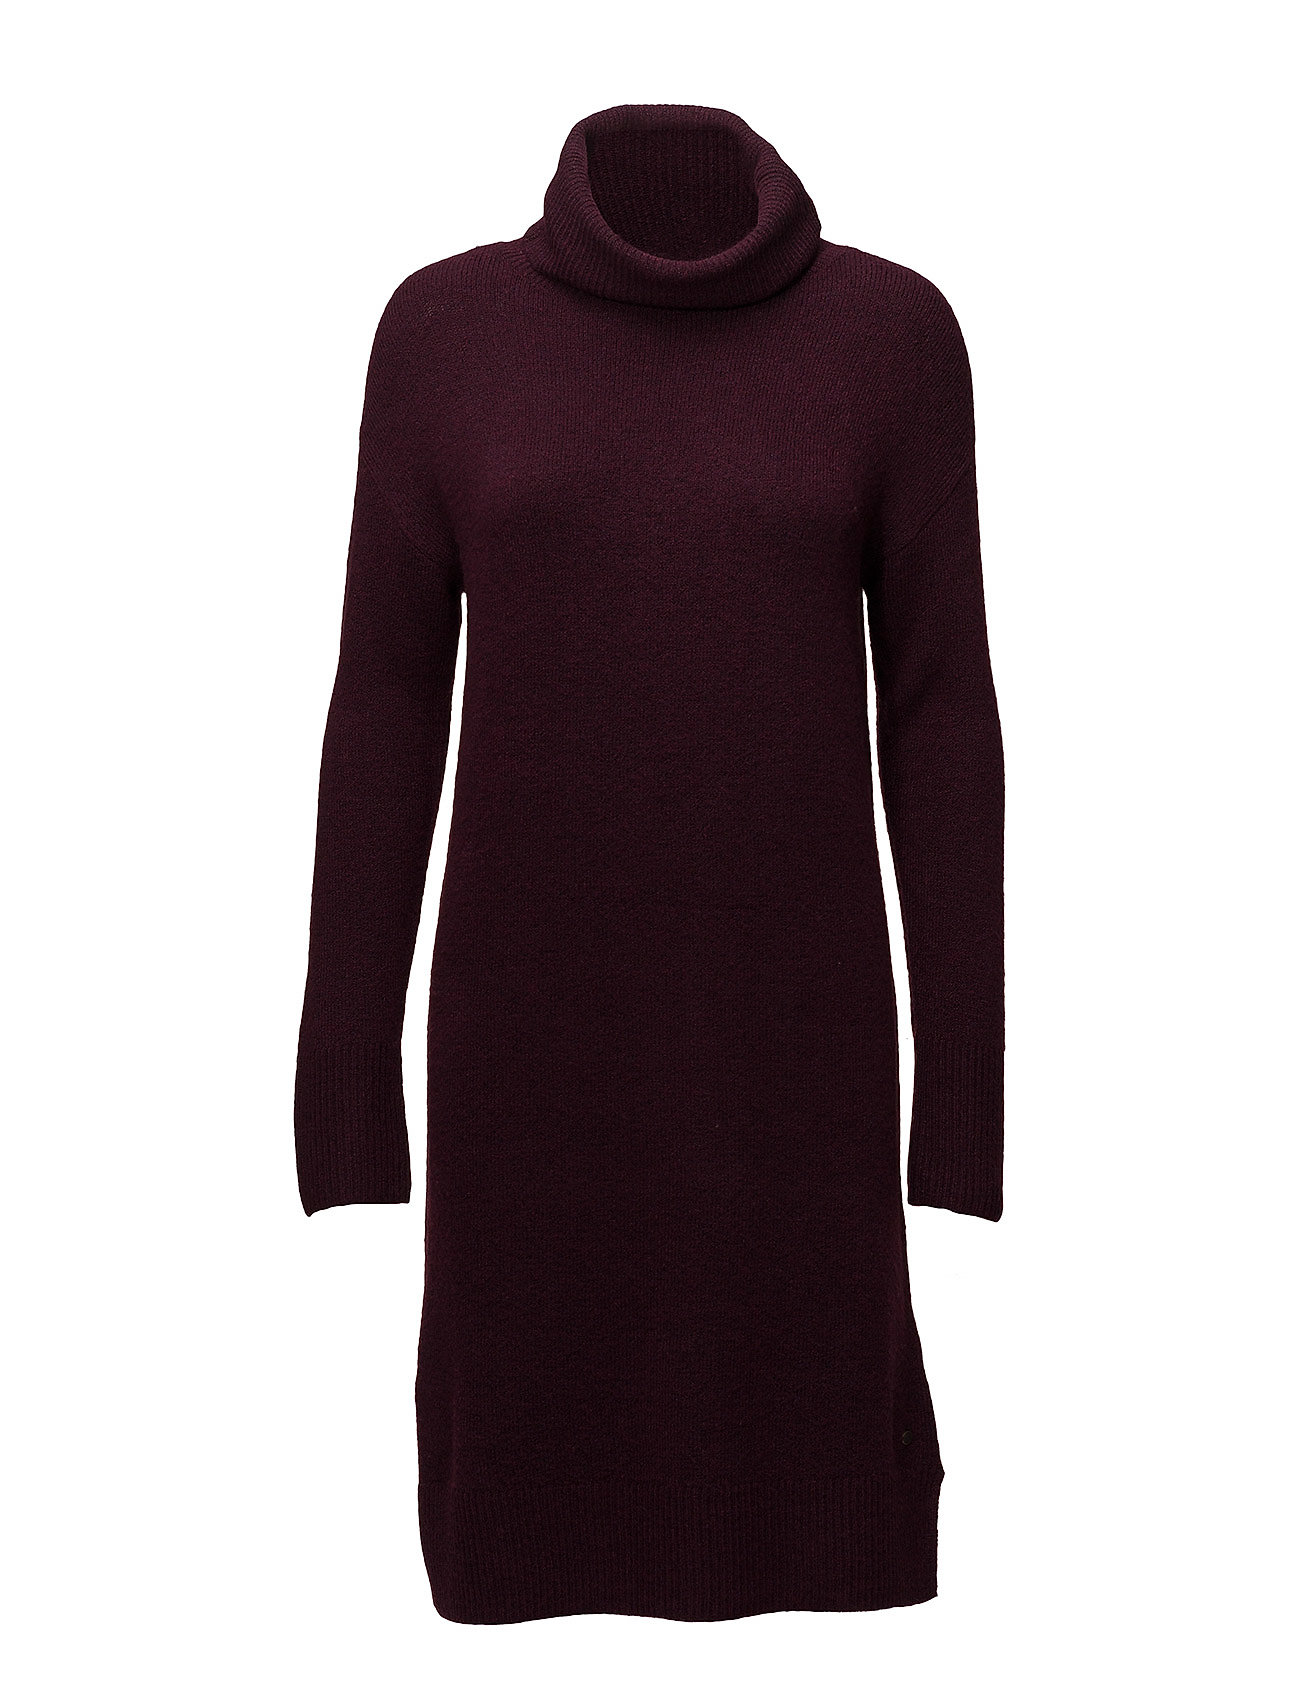 Dresses Flat Knitted EDC by Esprit Striktøj til Damer i